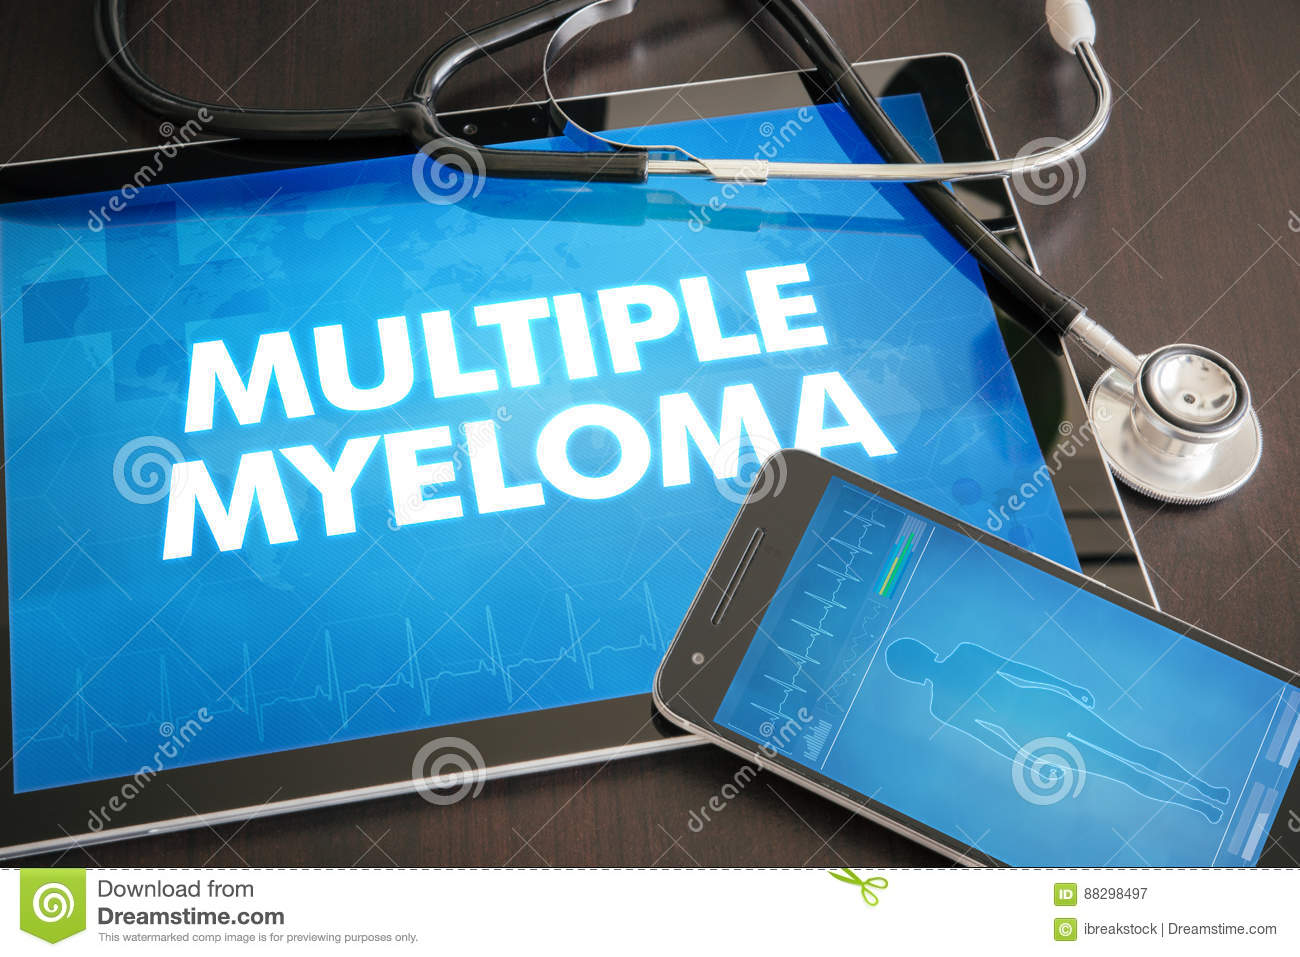 Multiple myeloma (cancer type) diagnosis medical concept on tablet screen with stethoscope